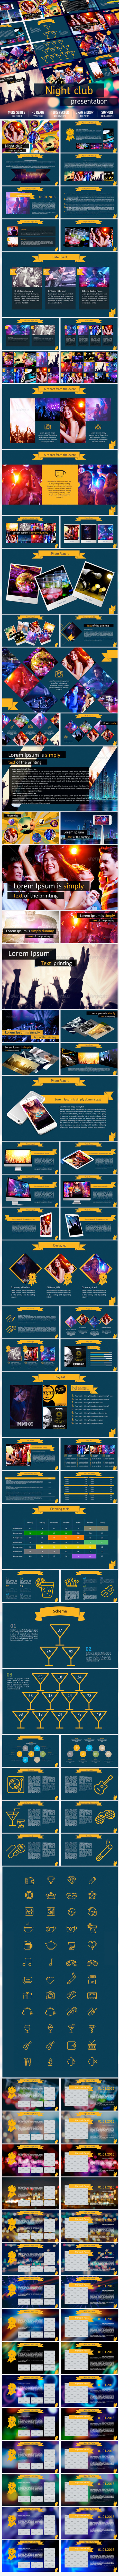 Night club Keynote template - Miscellaneous Keynote Templates